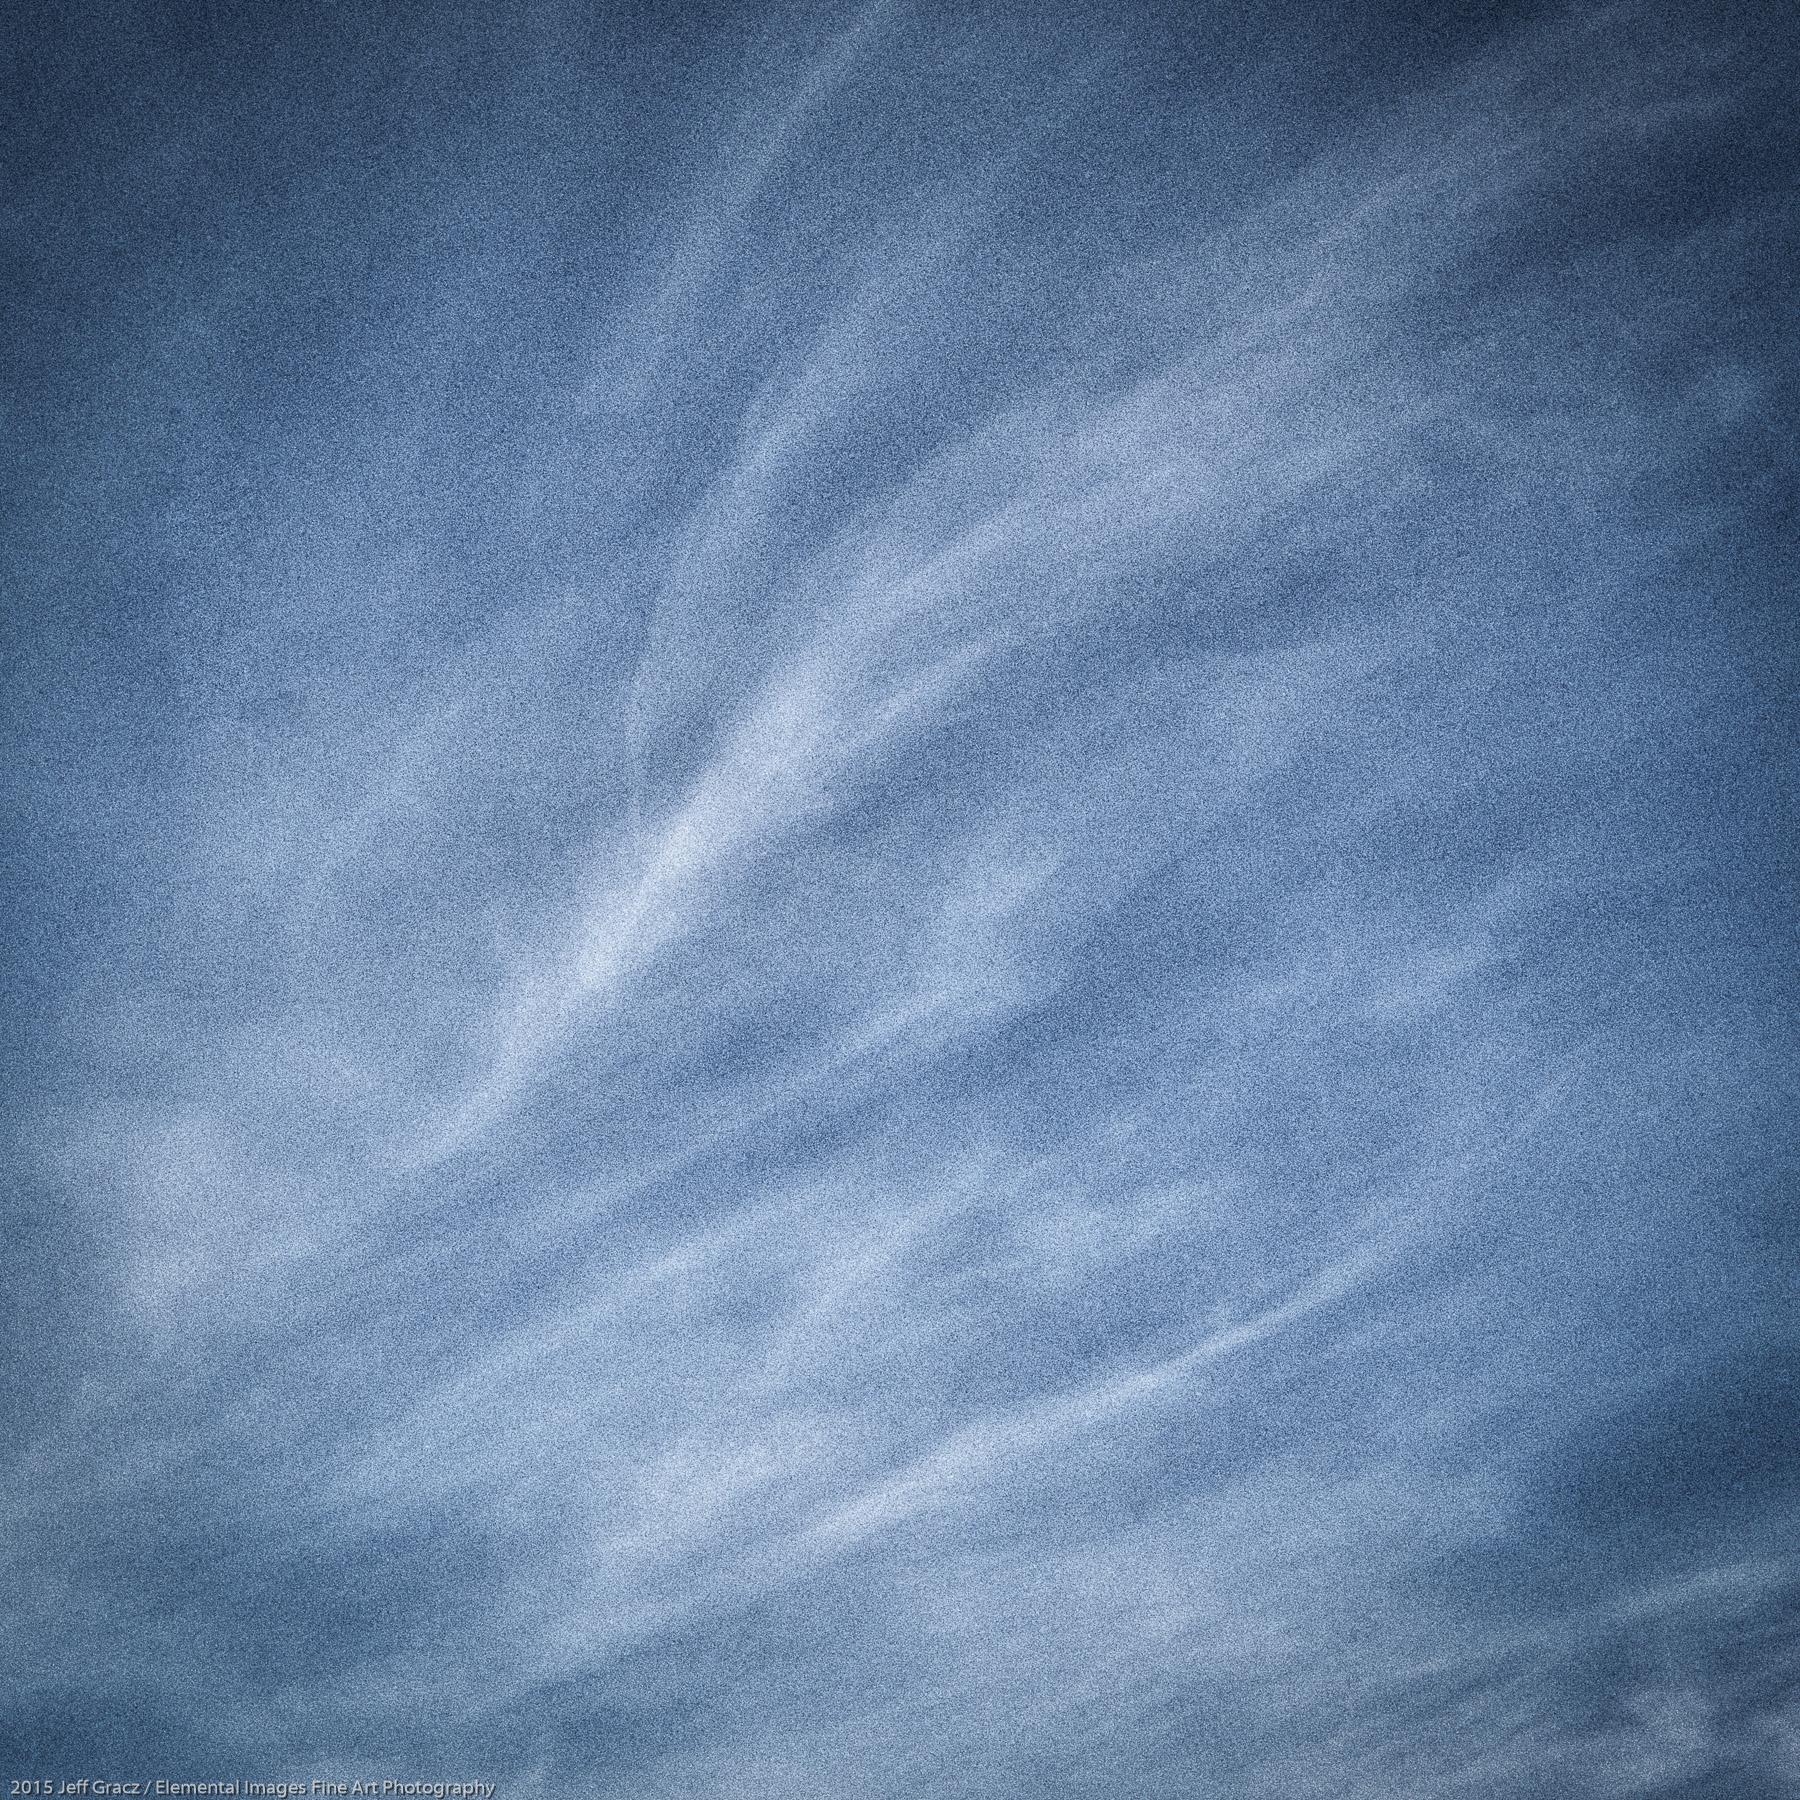 Skyscapes #2   Vancouver   WA   USA - © 2015 Jeff Gracz / Elemental Images Fine Art Photography - All Rights Reserved Worldwide